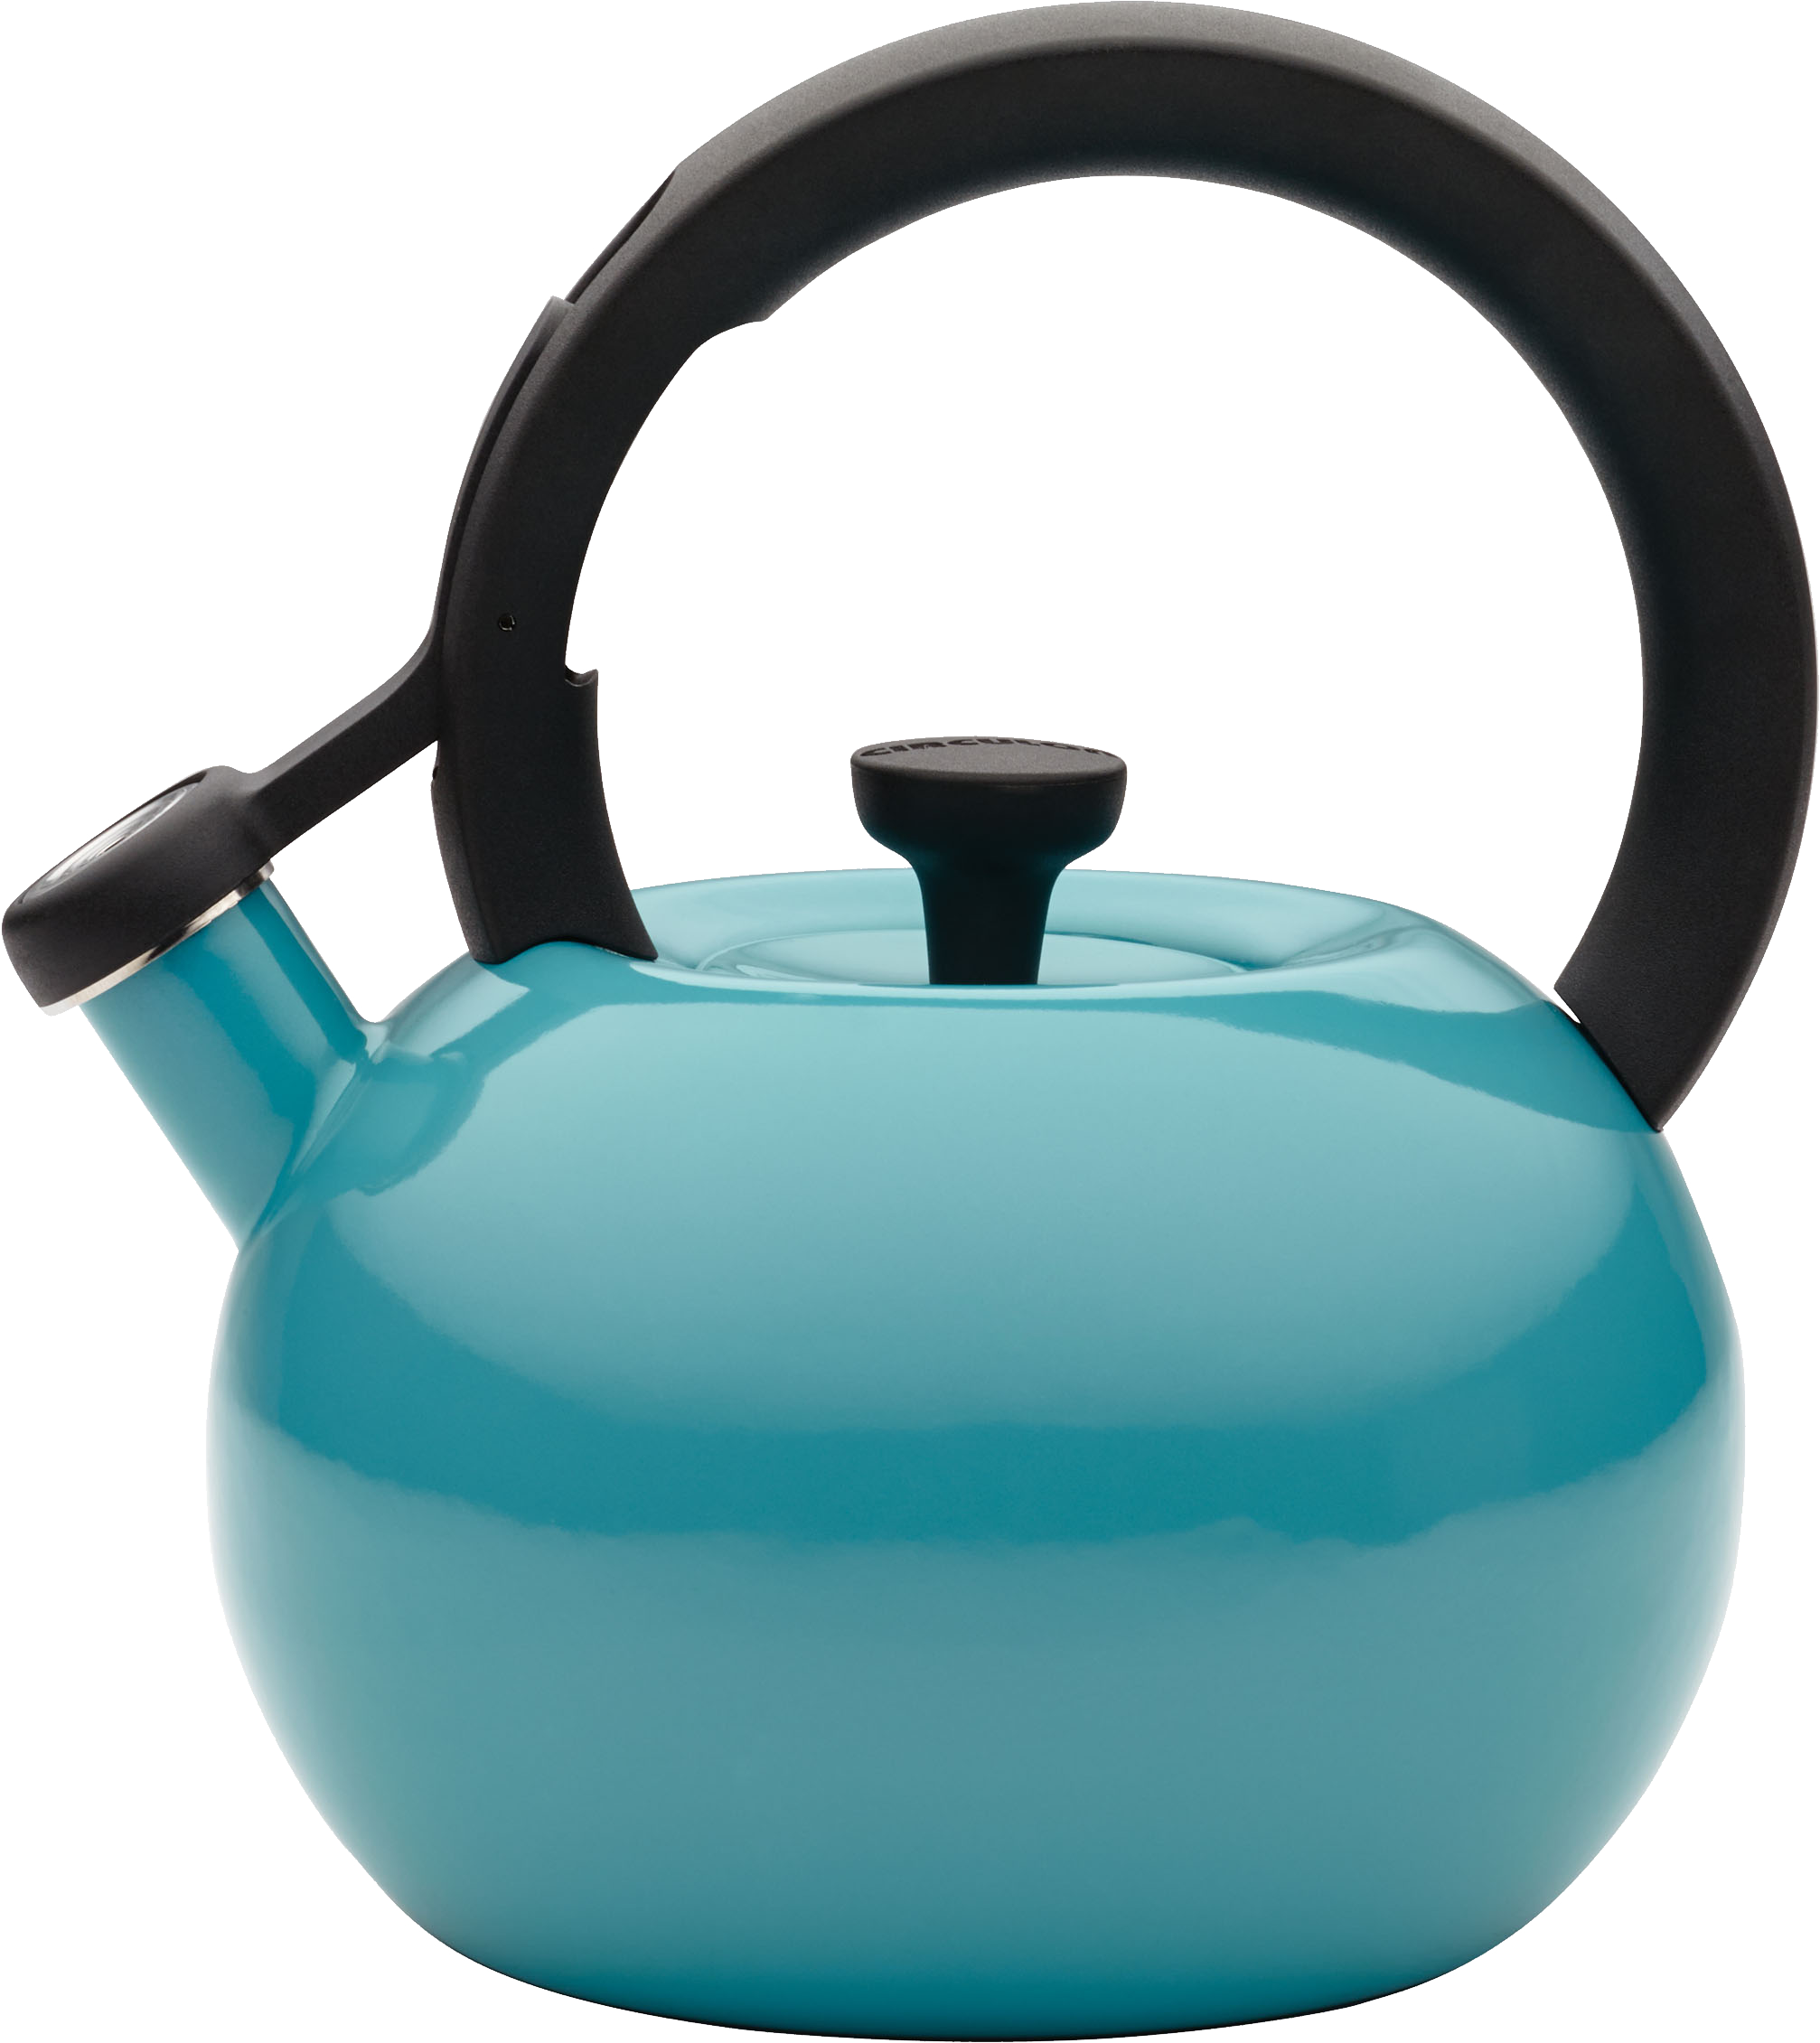 Kettle PNG image free download, tea kettle PNG.